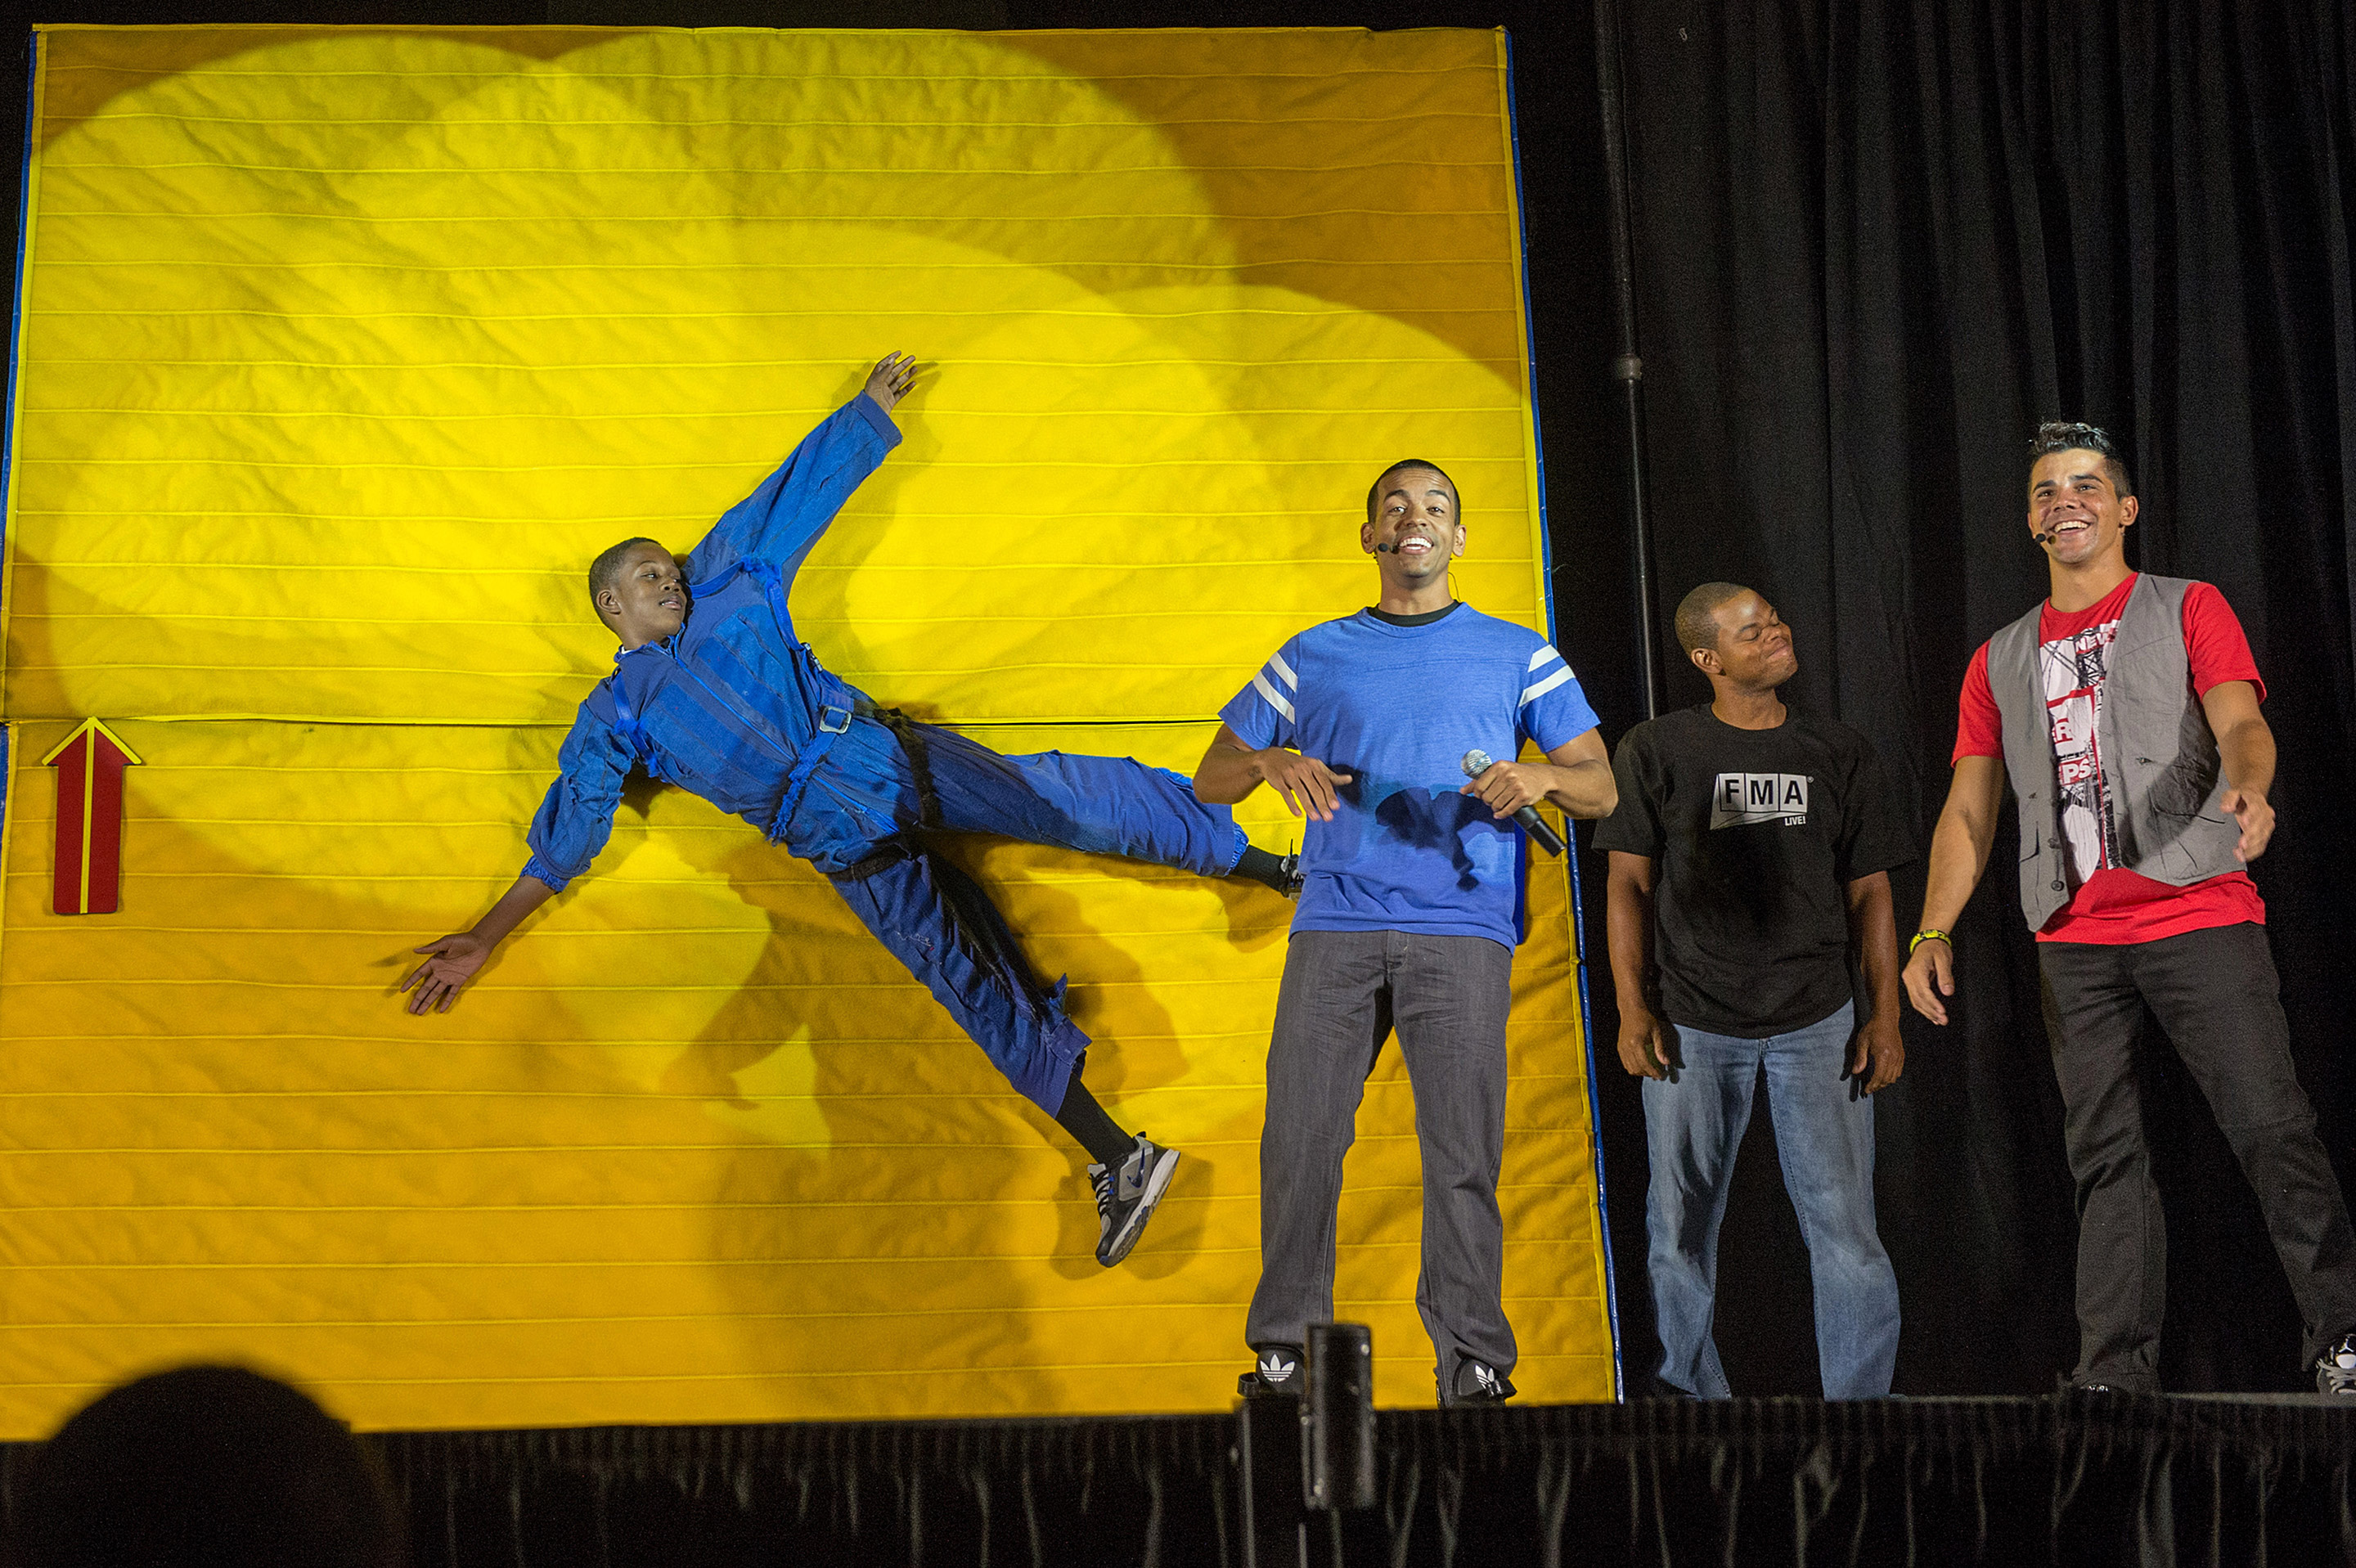 """With the help of a student participant, """"FMA Live!"""" crew members explain Newton's first law of motion at Hardy Middle School in Washington on Sept. 16th, 2013. """"FMA Live!"""" travels across the country and has reached nearly 300,000 students. Image: NASA/Jay Westcott"""